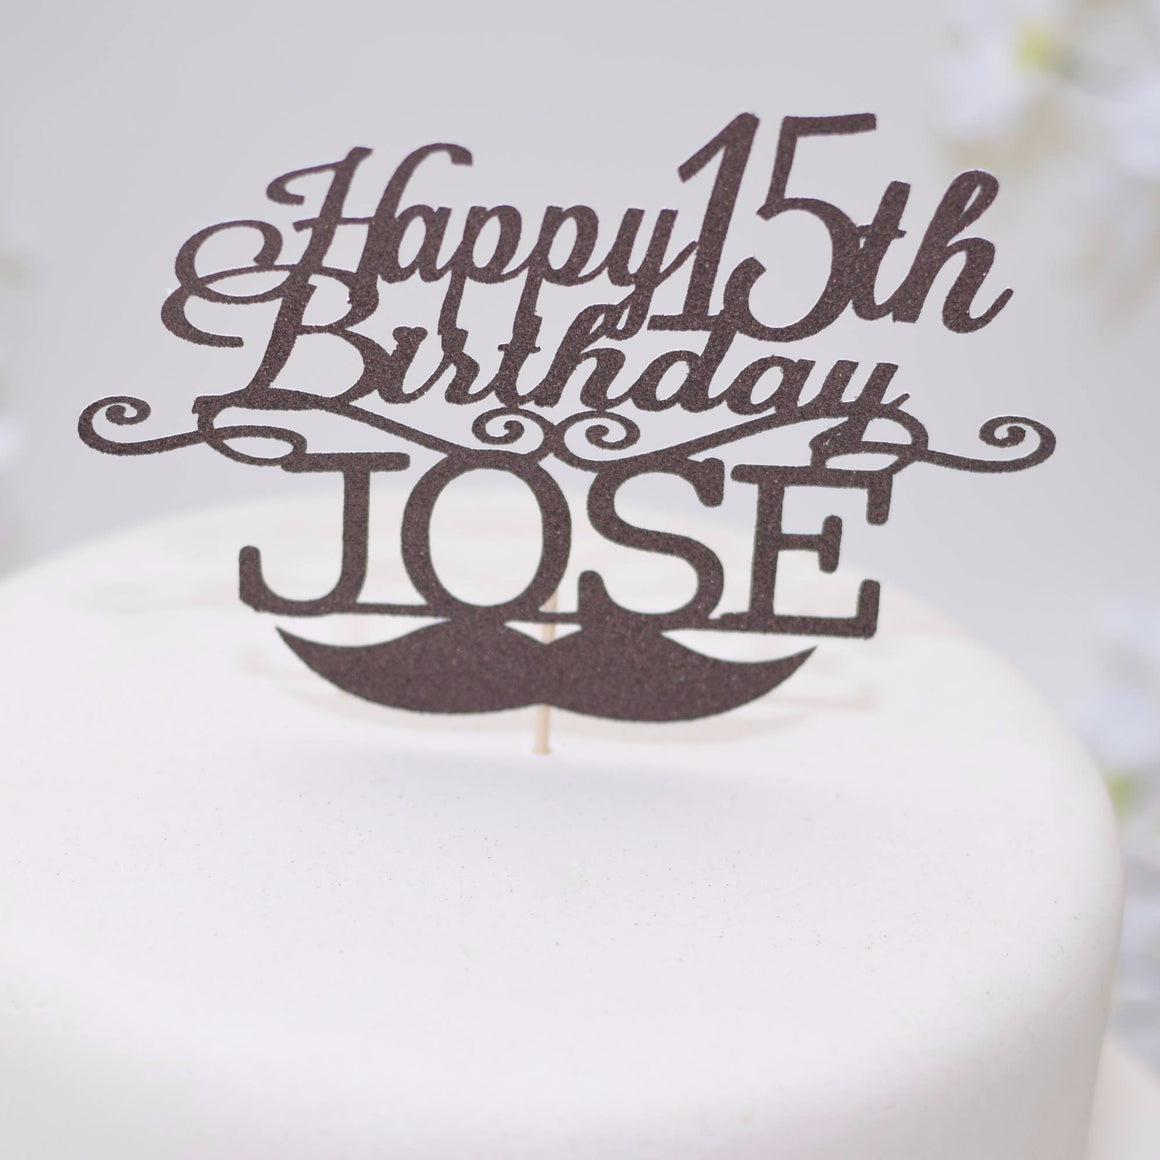 Happy 15th birthday Jose black cake topper with moustache